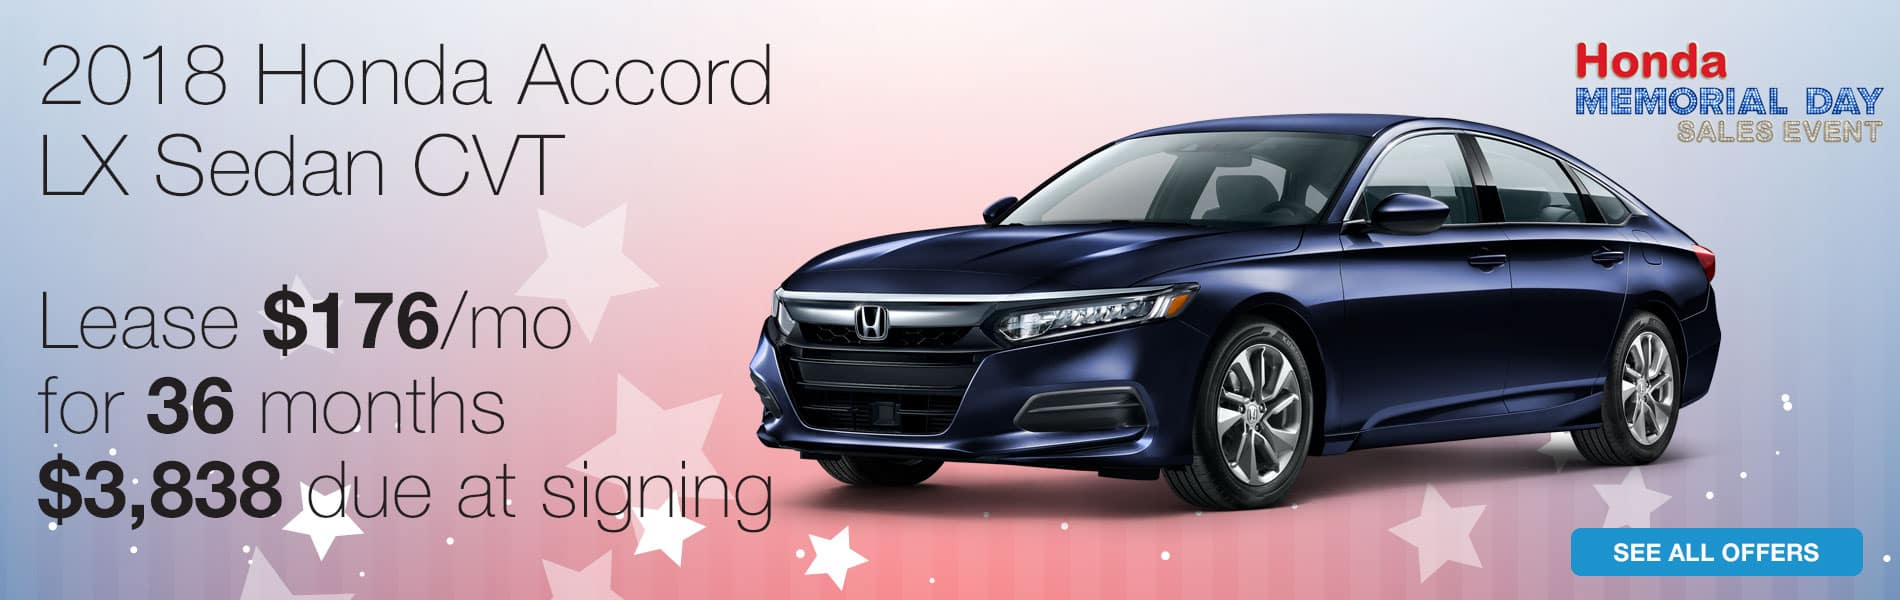 Lease a 2018 Honda Accord LX for $176 per month with $3,838 due at signing.